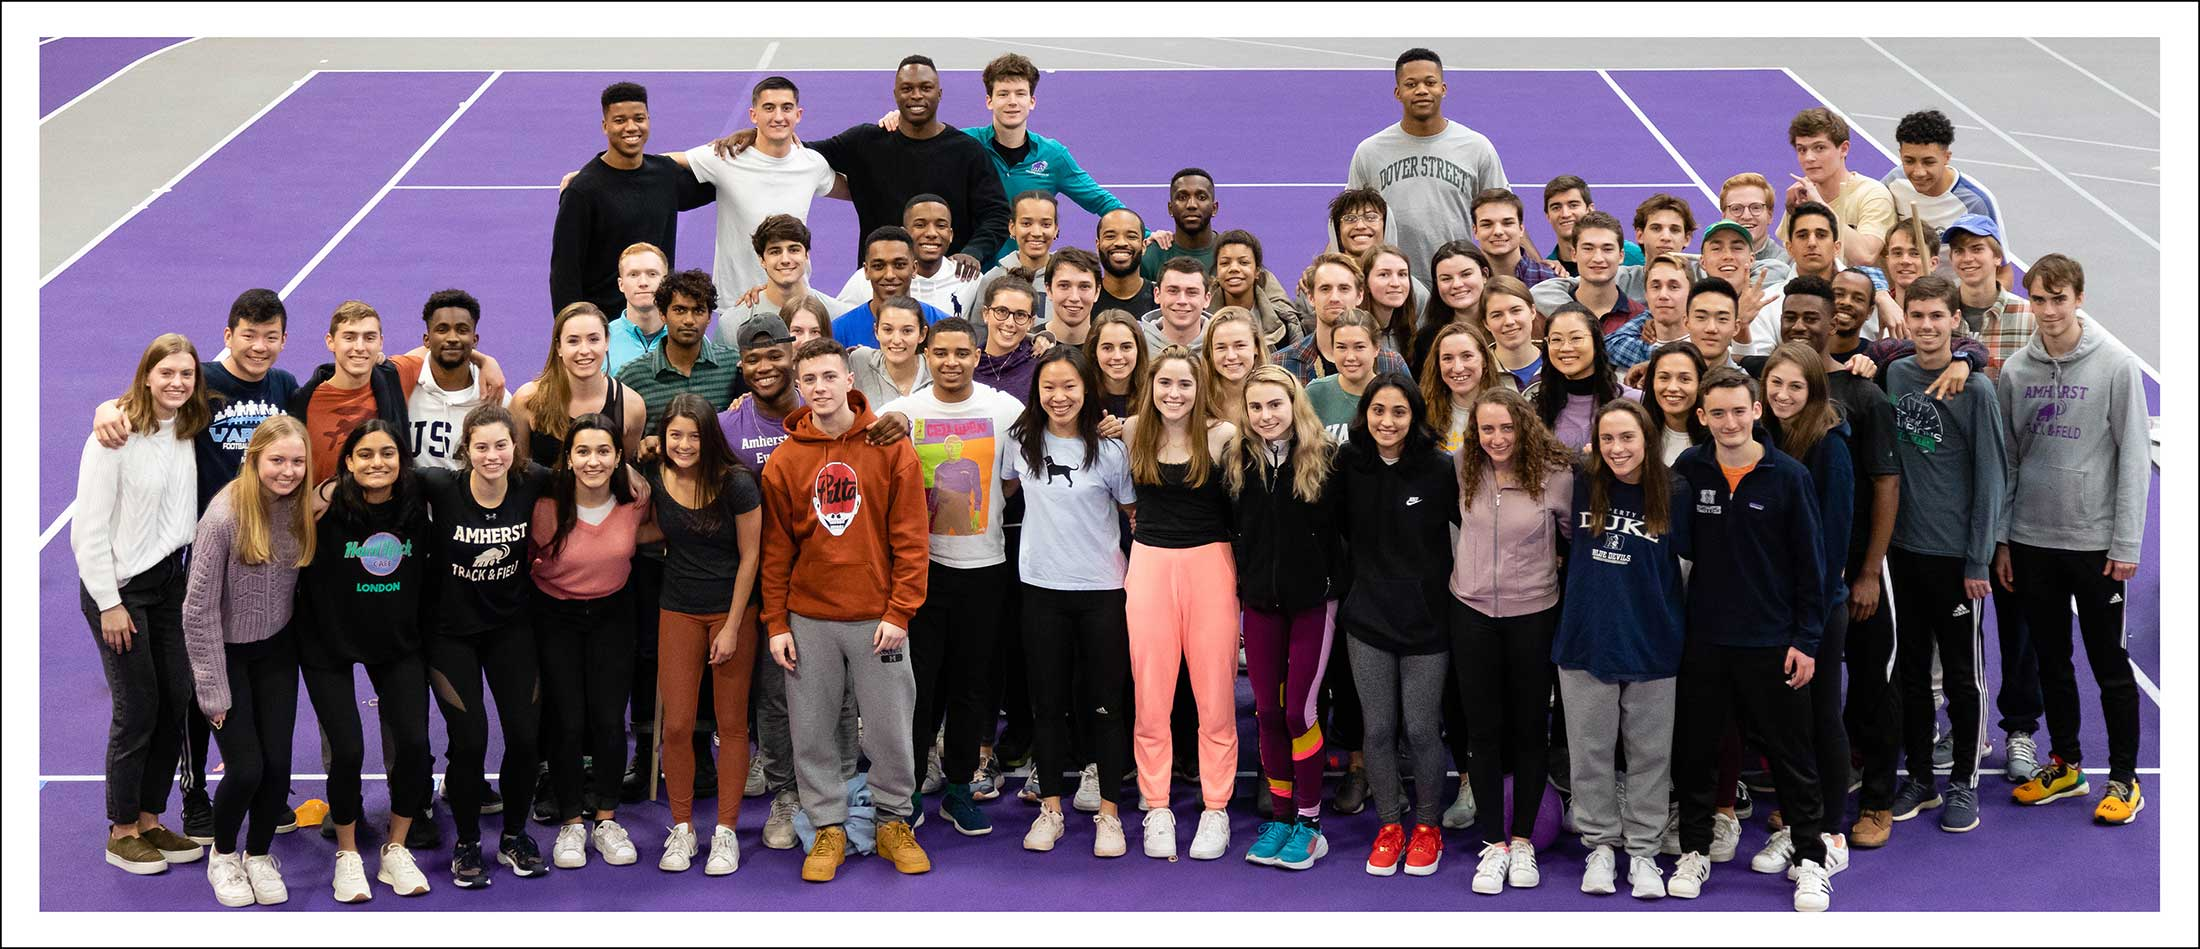 The Amherst College track and field team